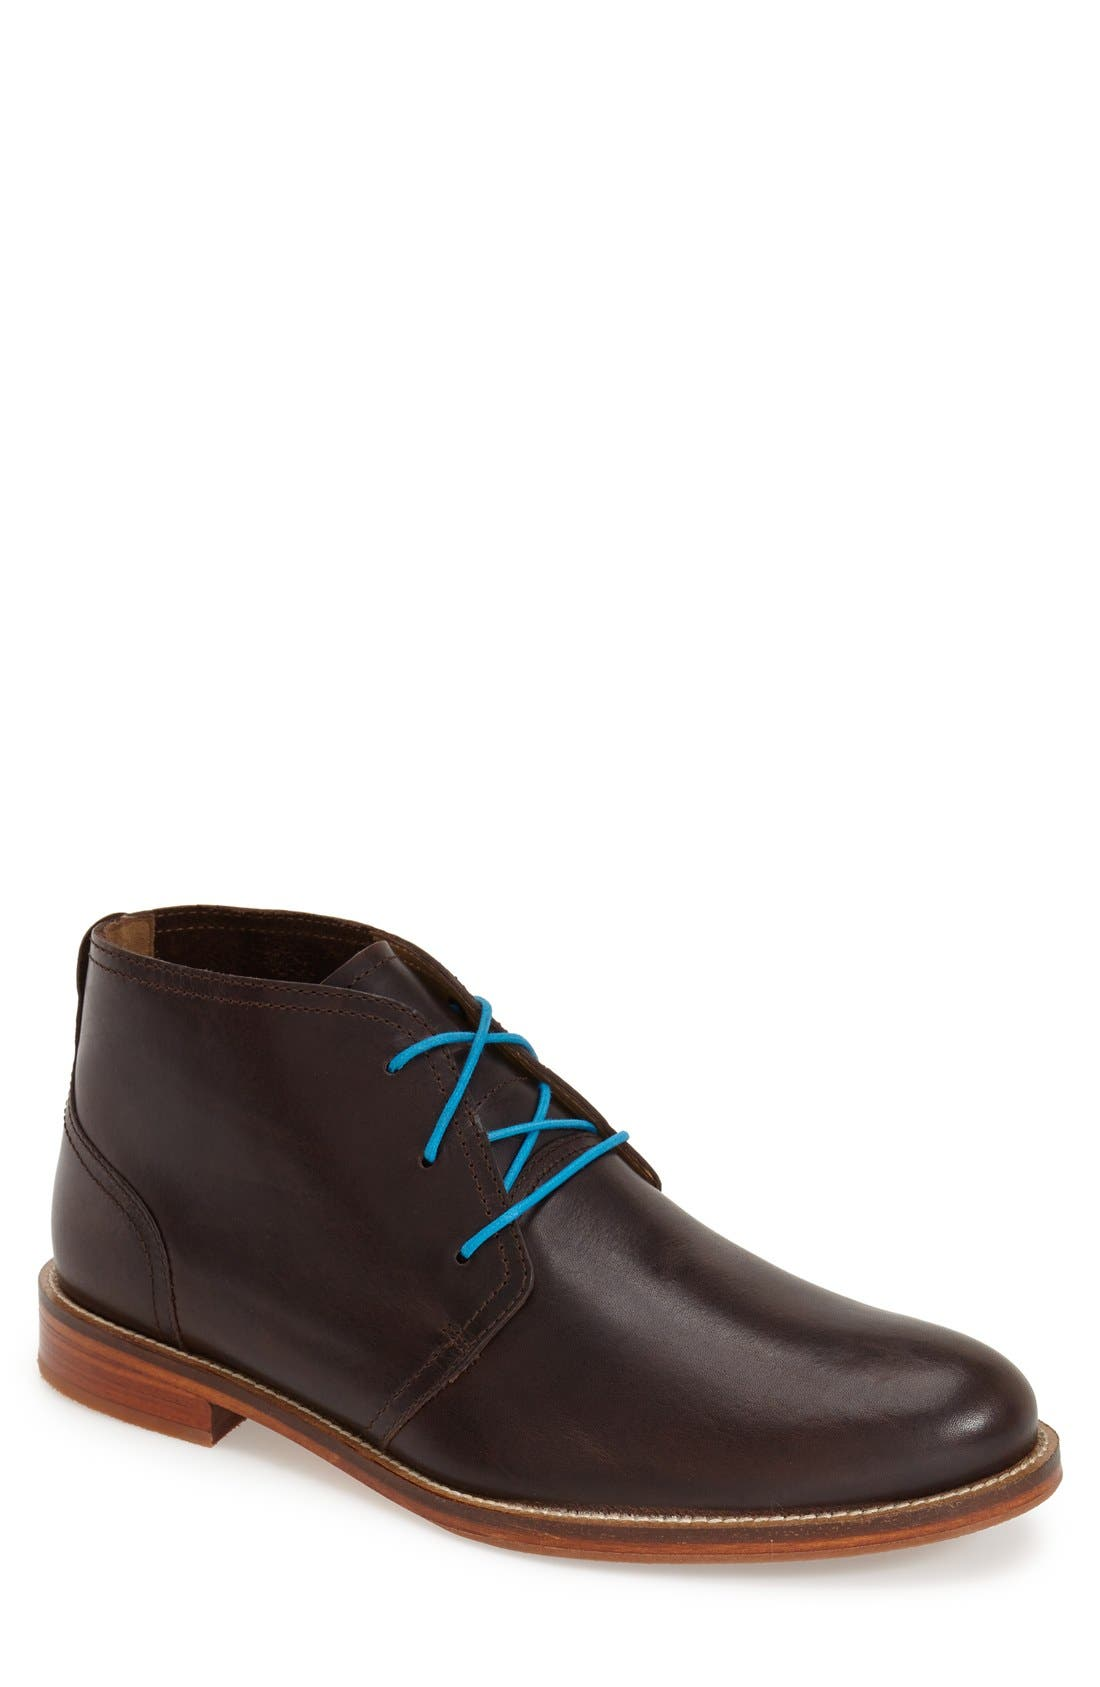 'Monarch Plus' Chukka Boot,                             Main thumbnail 1, color,                             Dark Brown Leather